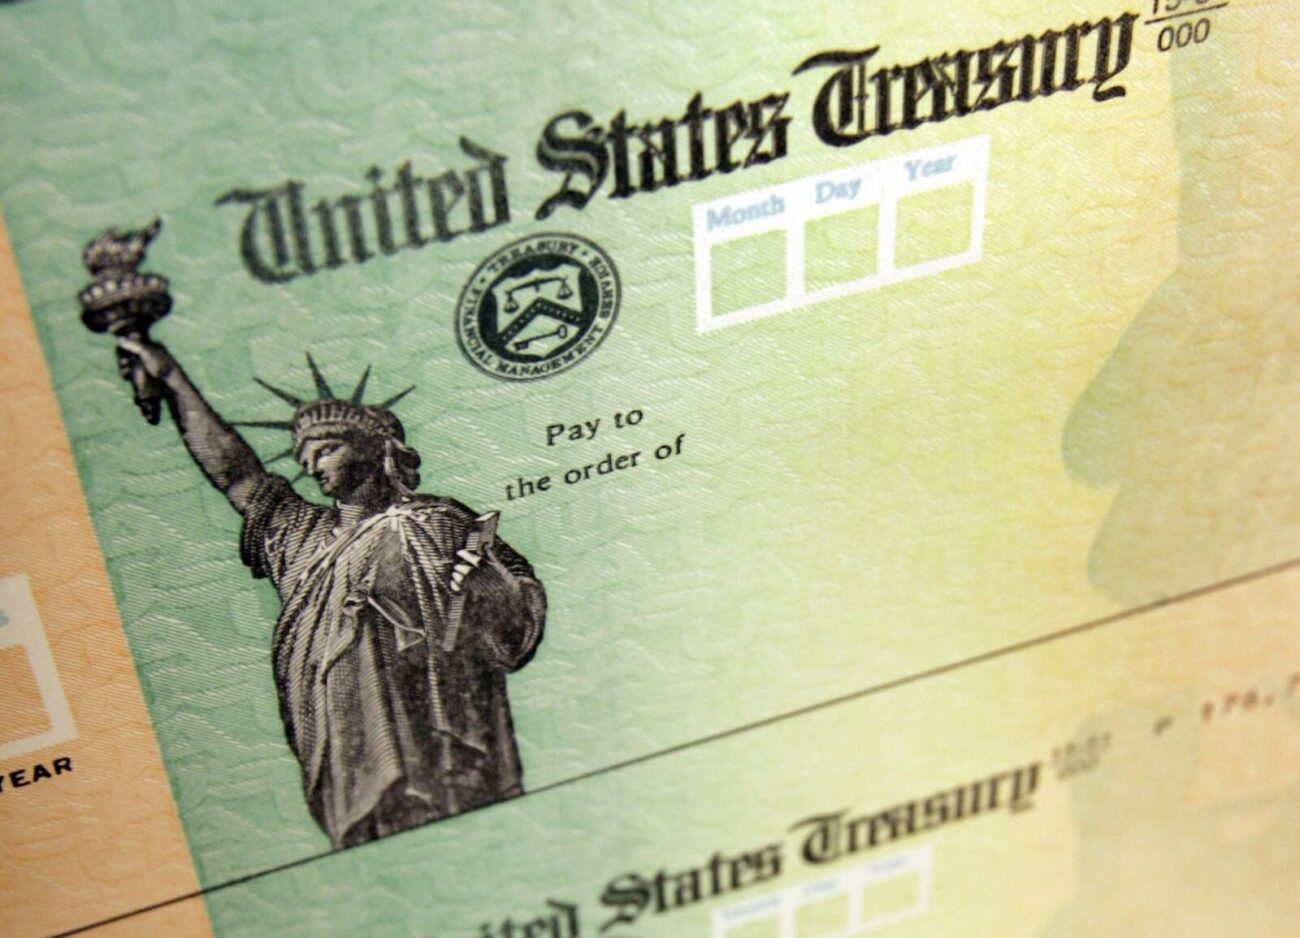 A third stimulus check is finally being issued, and you're likely waiting anxiously for it. Here's how you can check the status of your money.